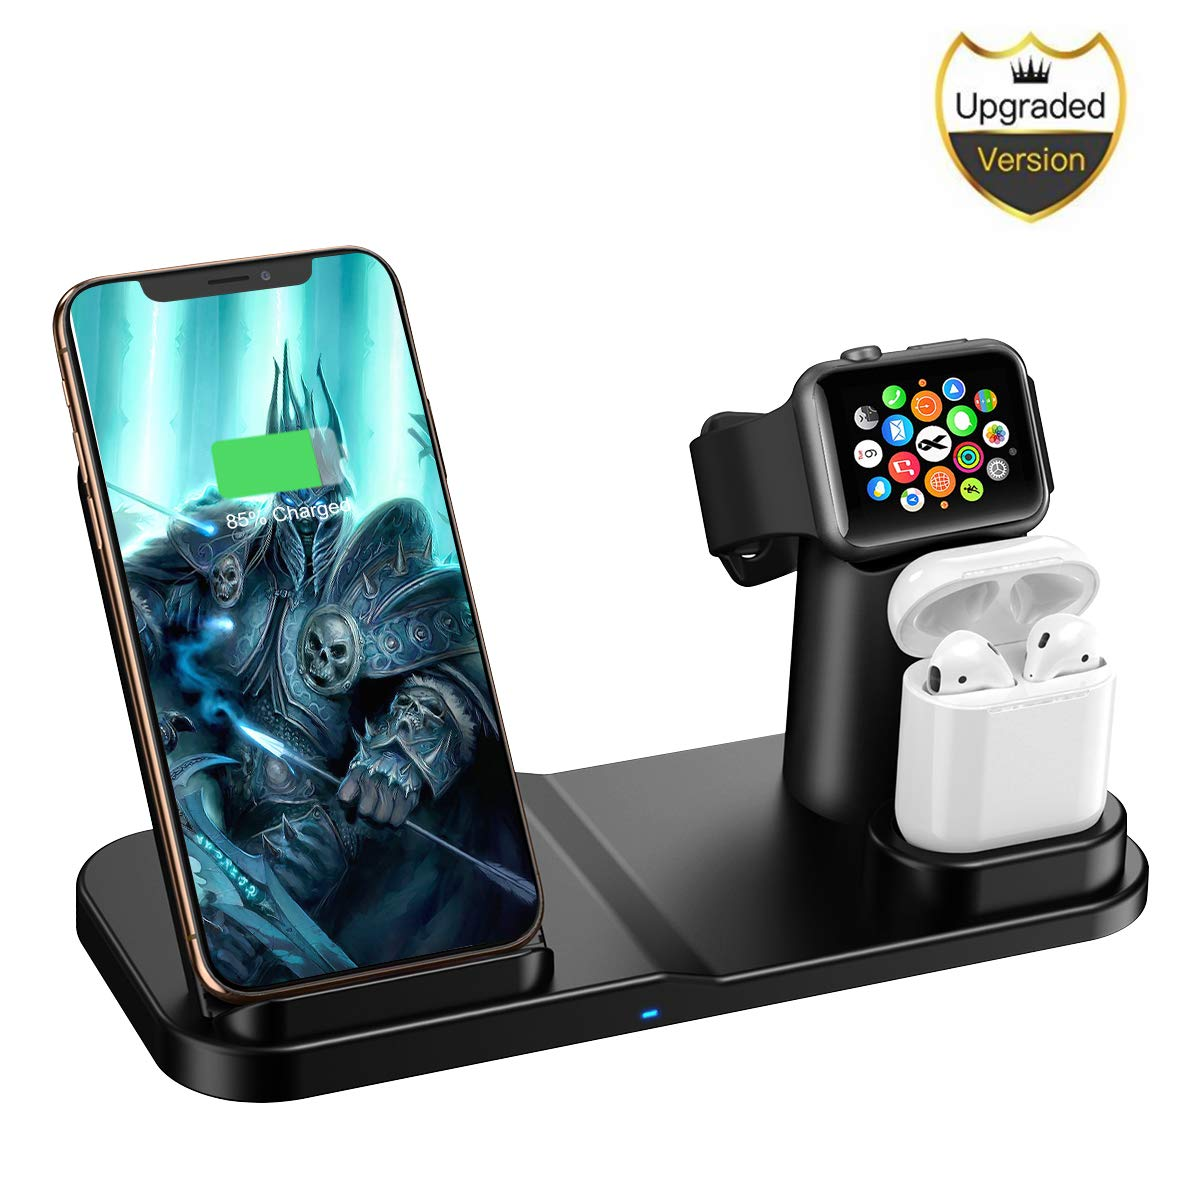 Wireless Charger, 3 in 1 10W Qi-Certified Fast Wireless Charger Stand Compatible iPhone 11/11 Pro Max/X/XS/XS Max/Apple Watch/Airpods by AQHQUA